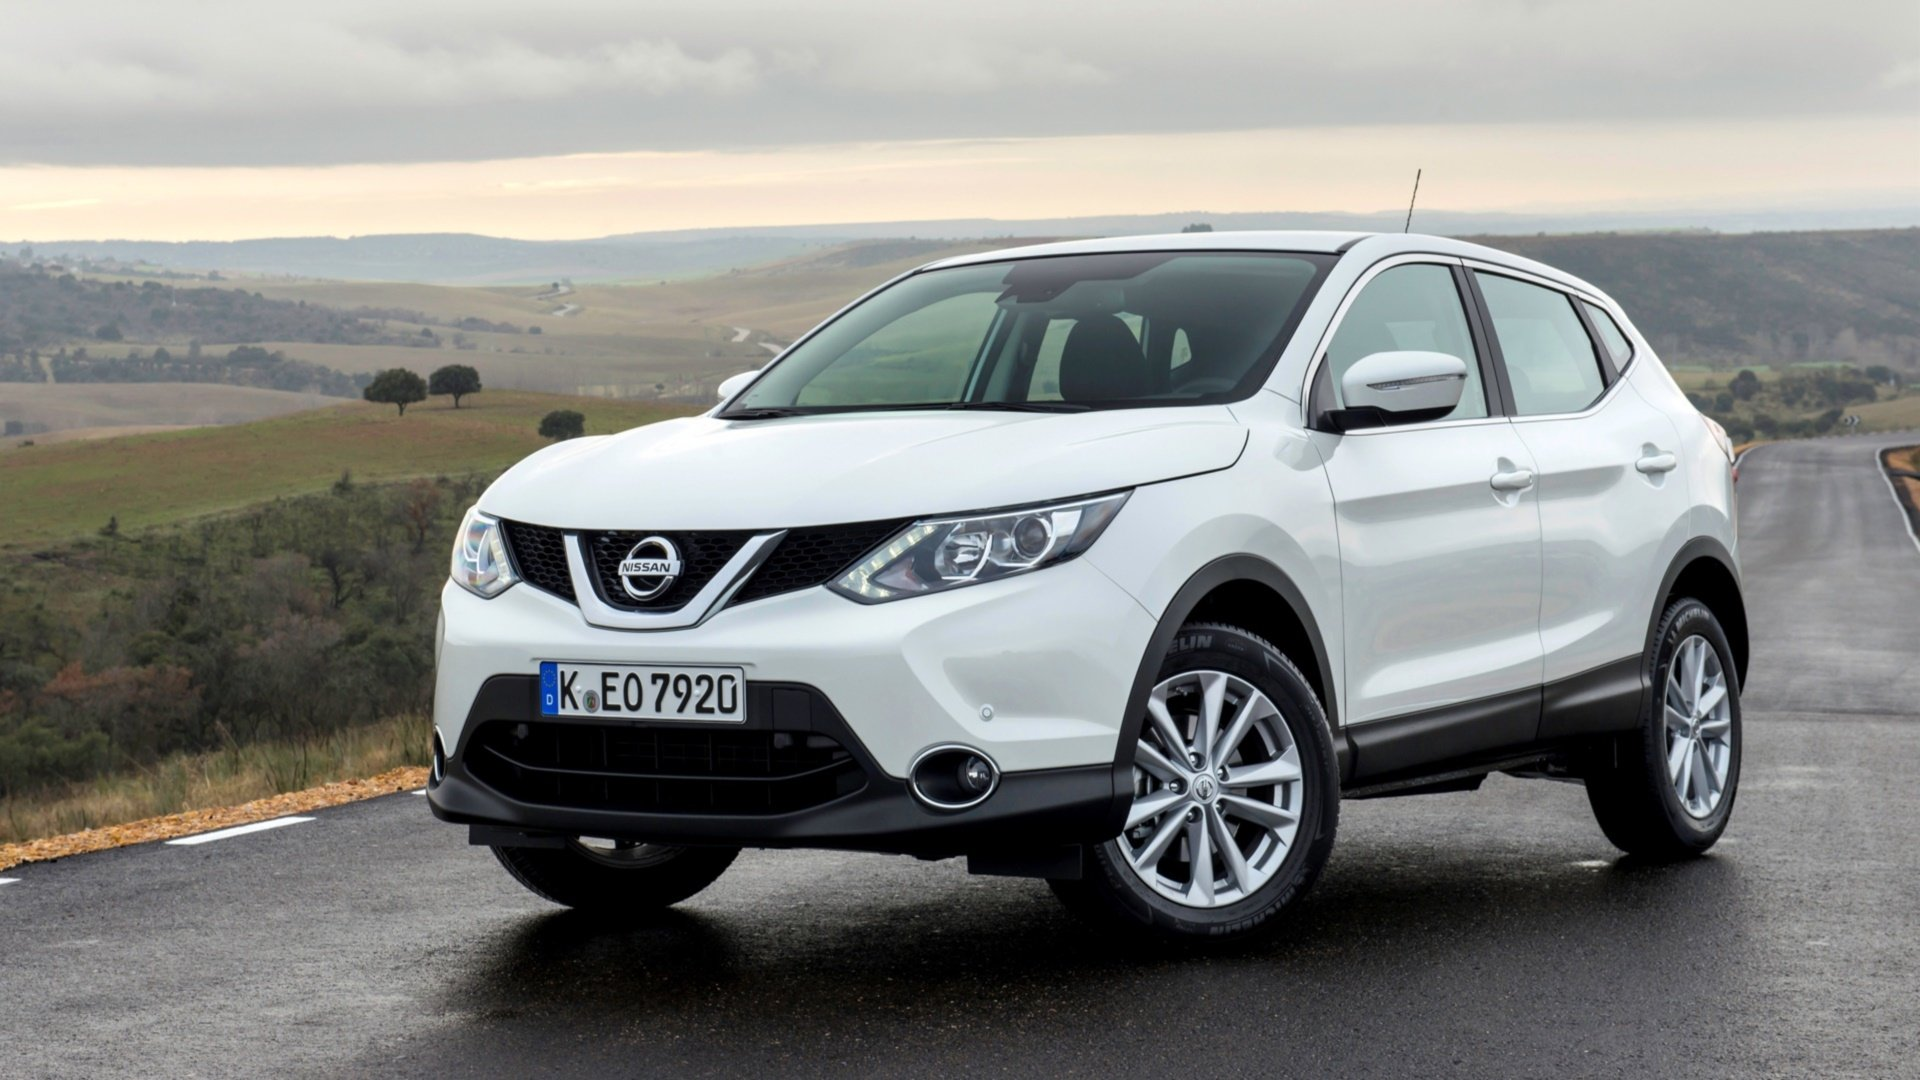 2014 nissan qashqai full hd wallpaper and background 1920x1080 id 477669. Black Bedroom Furniture Sets. Home Design Ideas